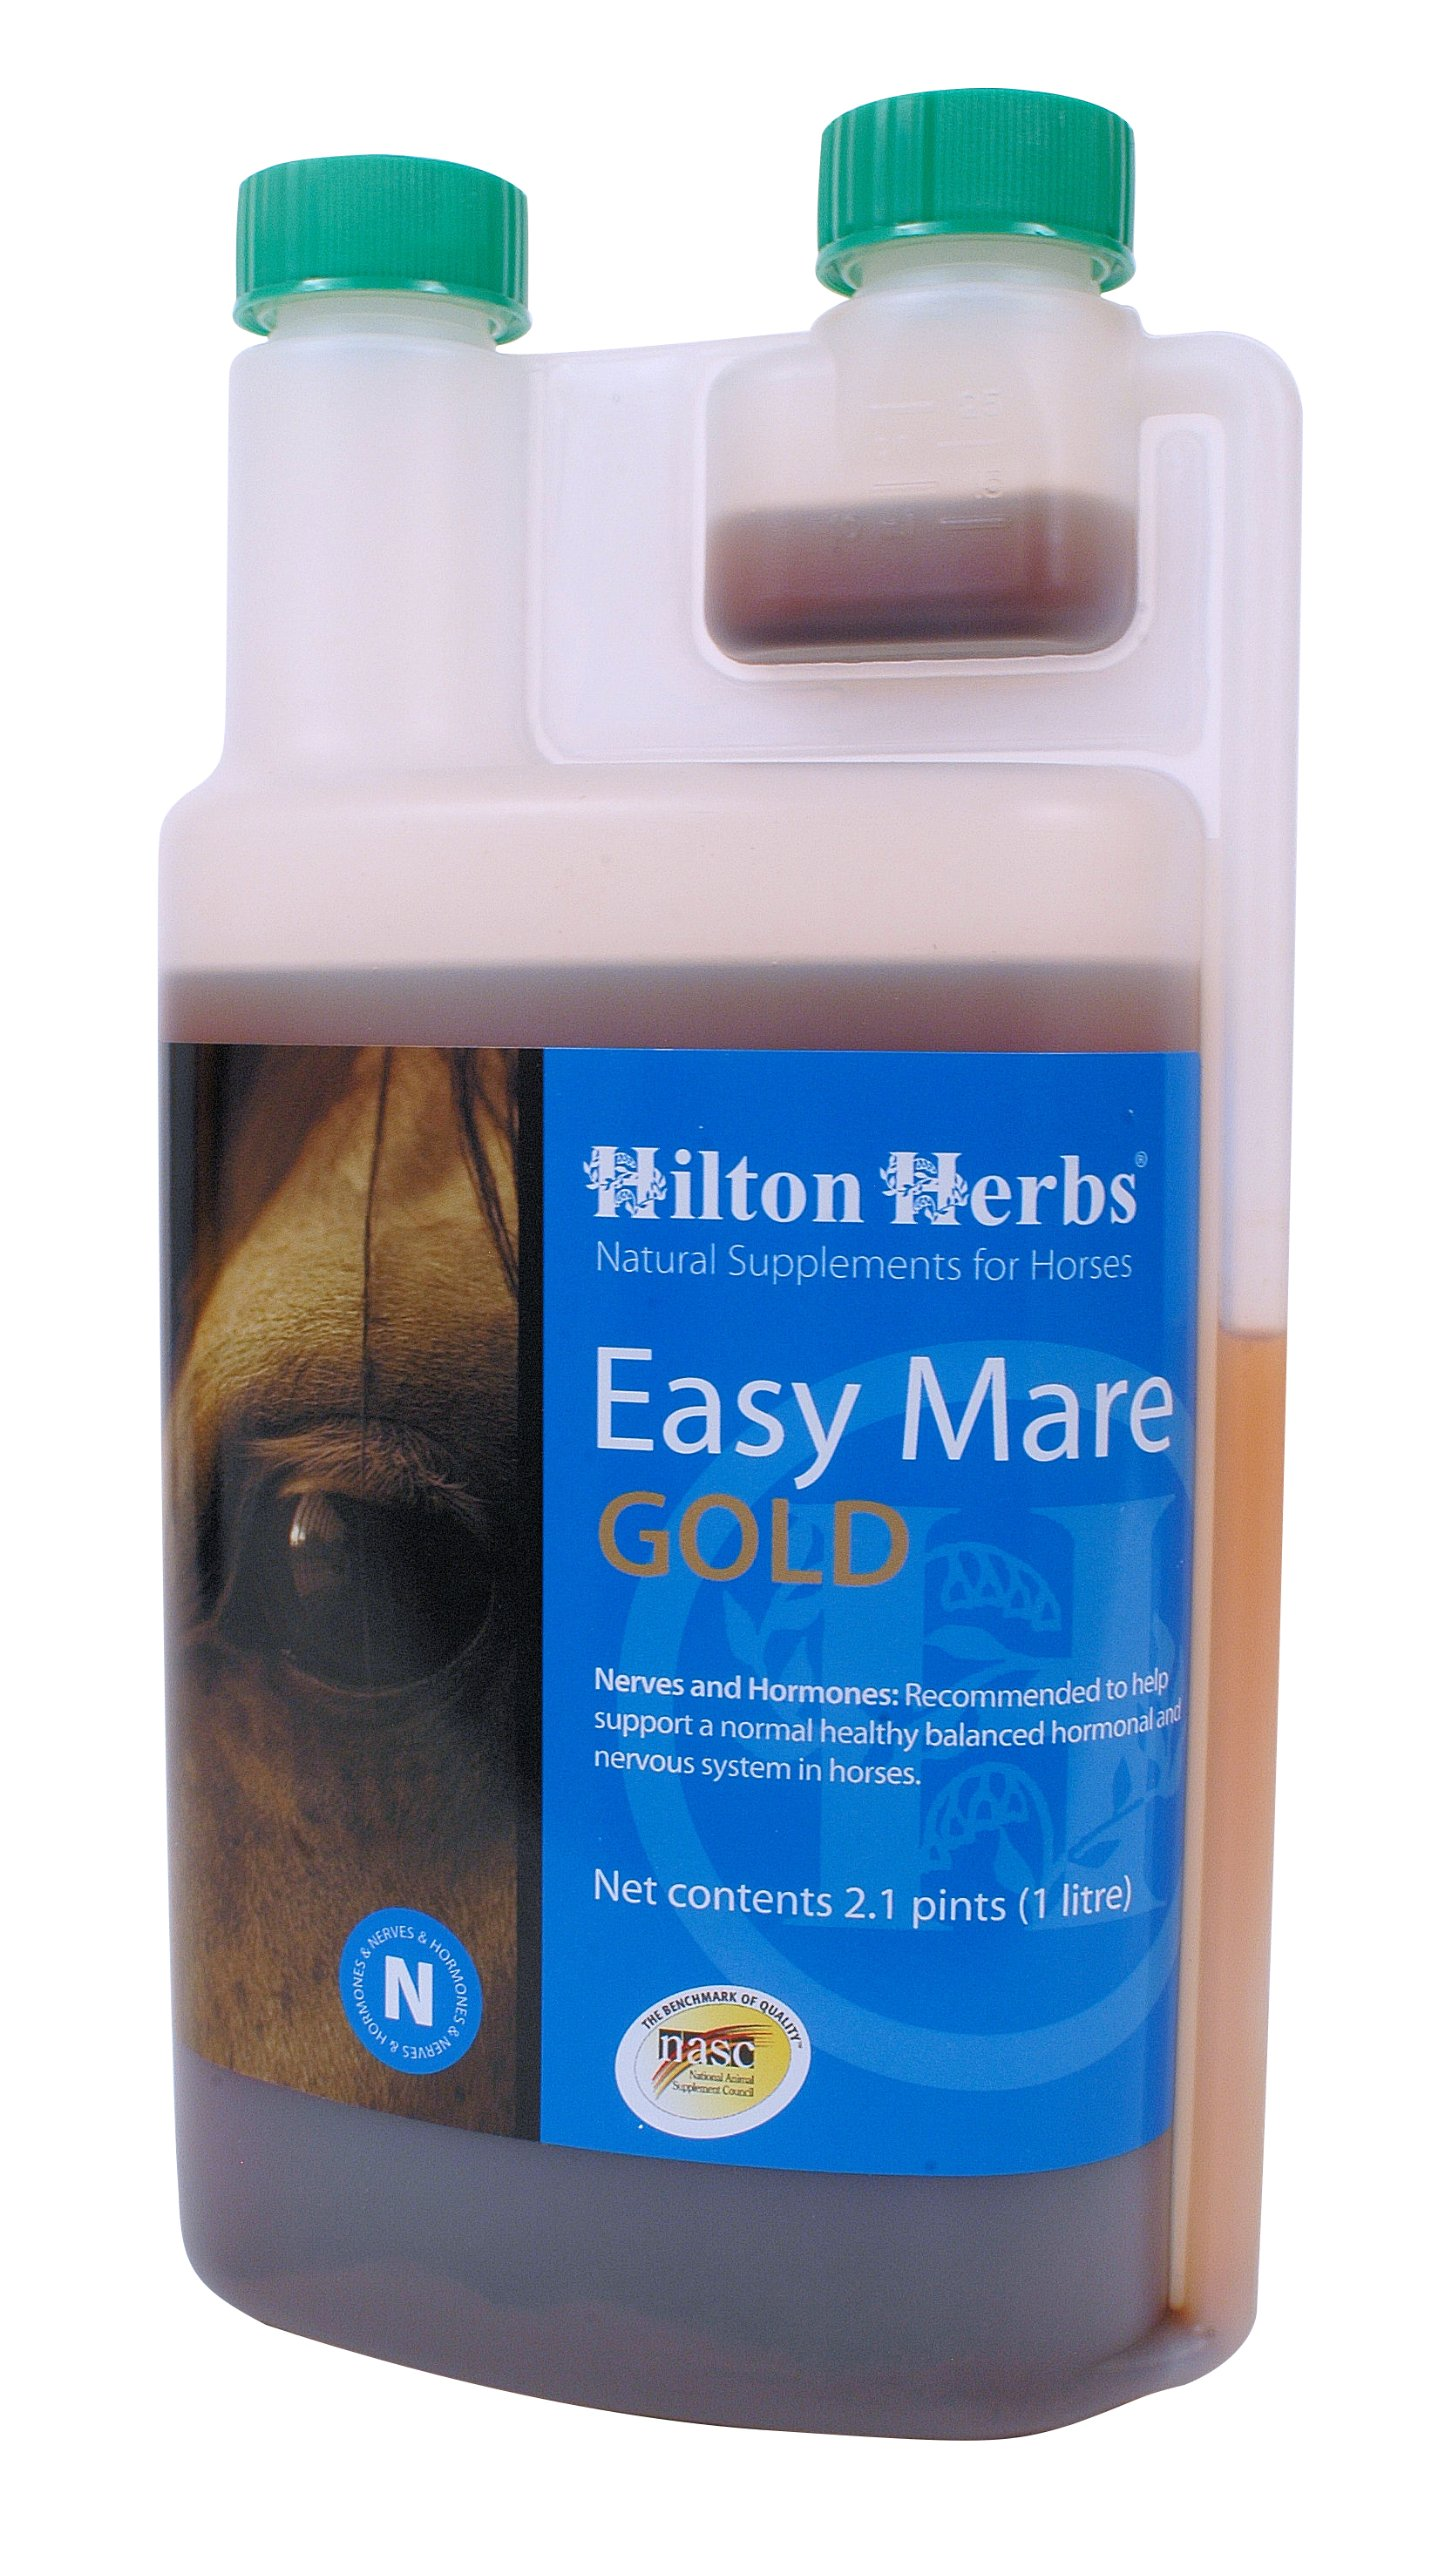 Hilton Herbs Easy Mare Gold Hormone Balancing Liquid Supplement for Horses, 2.1pt Bottle